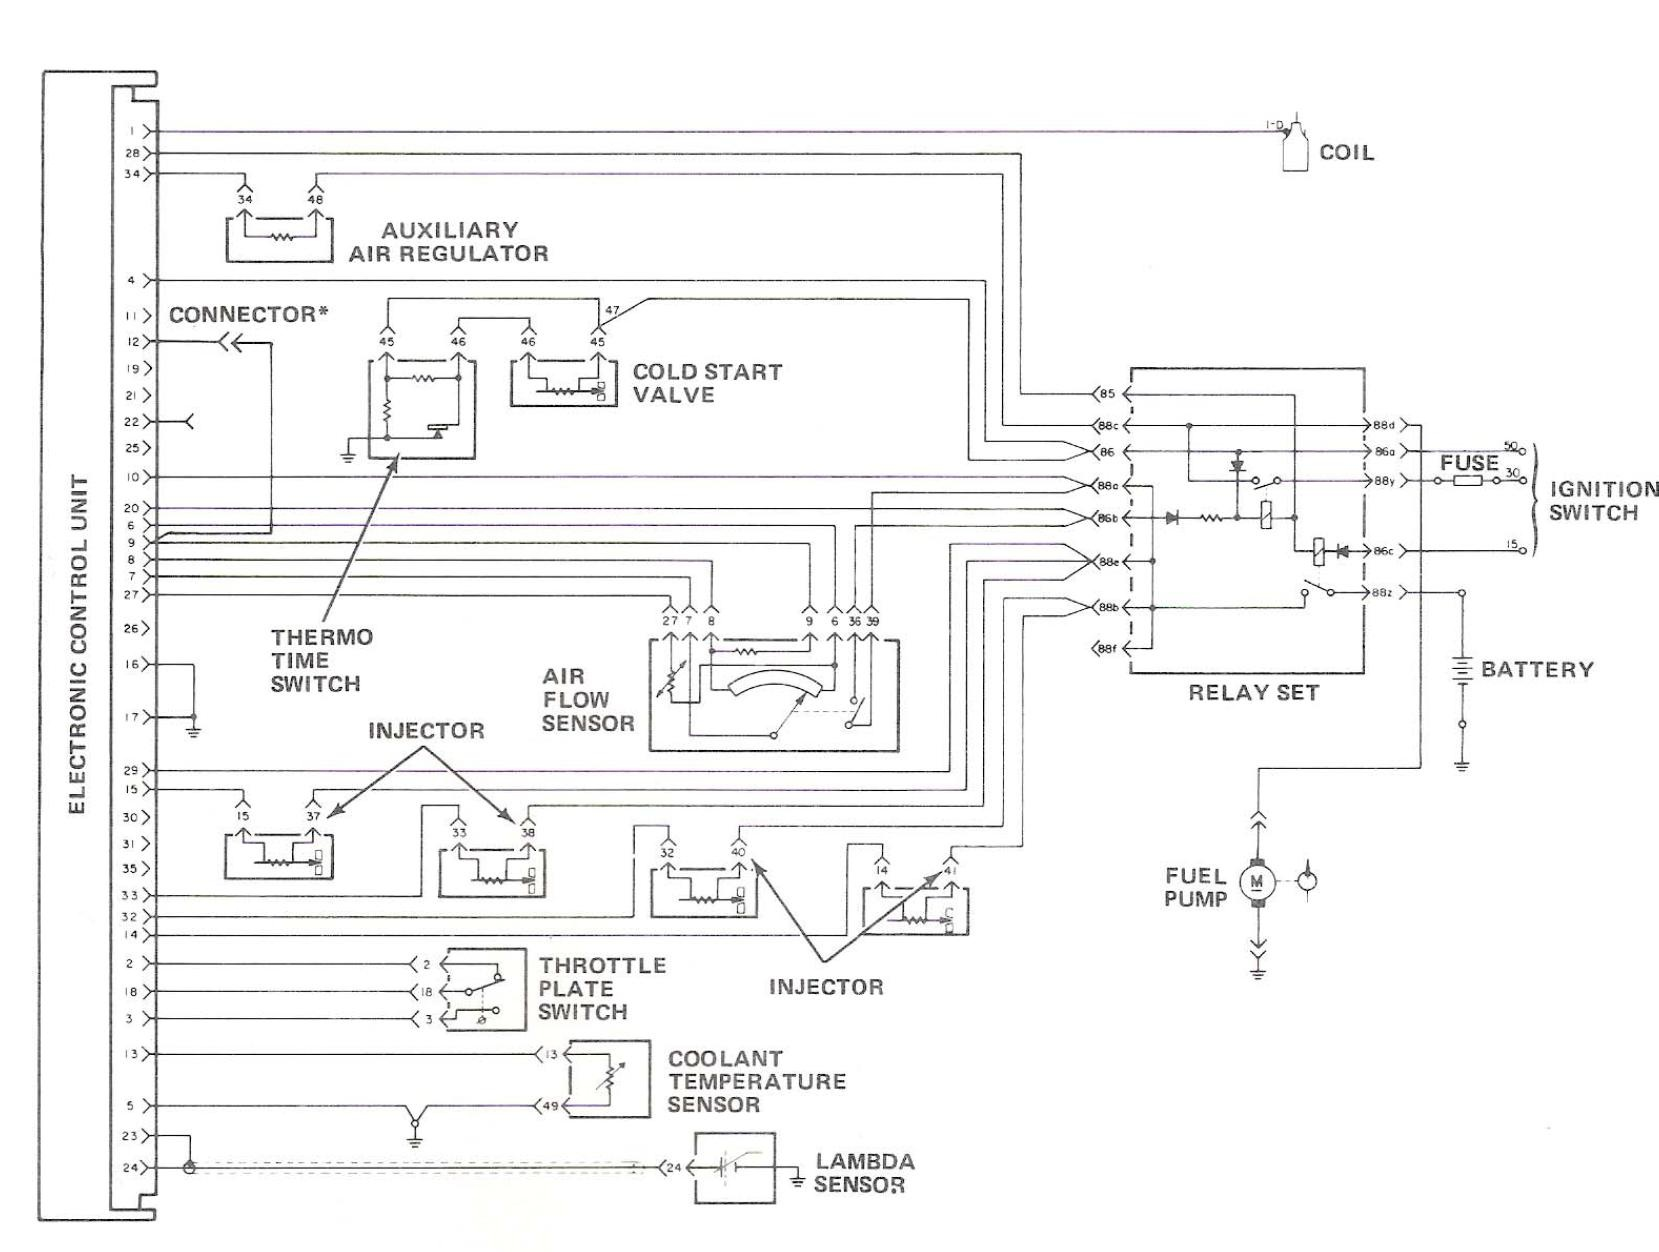 10Si Wiring Diagram from wiringall.com